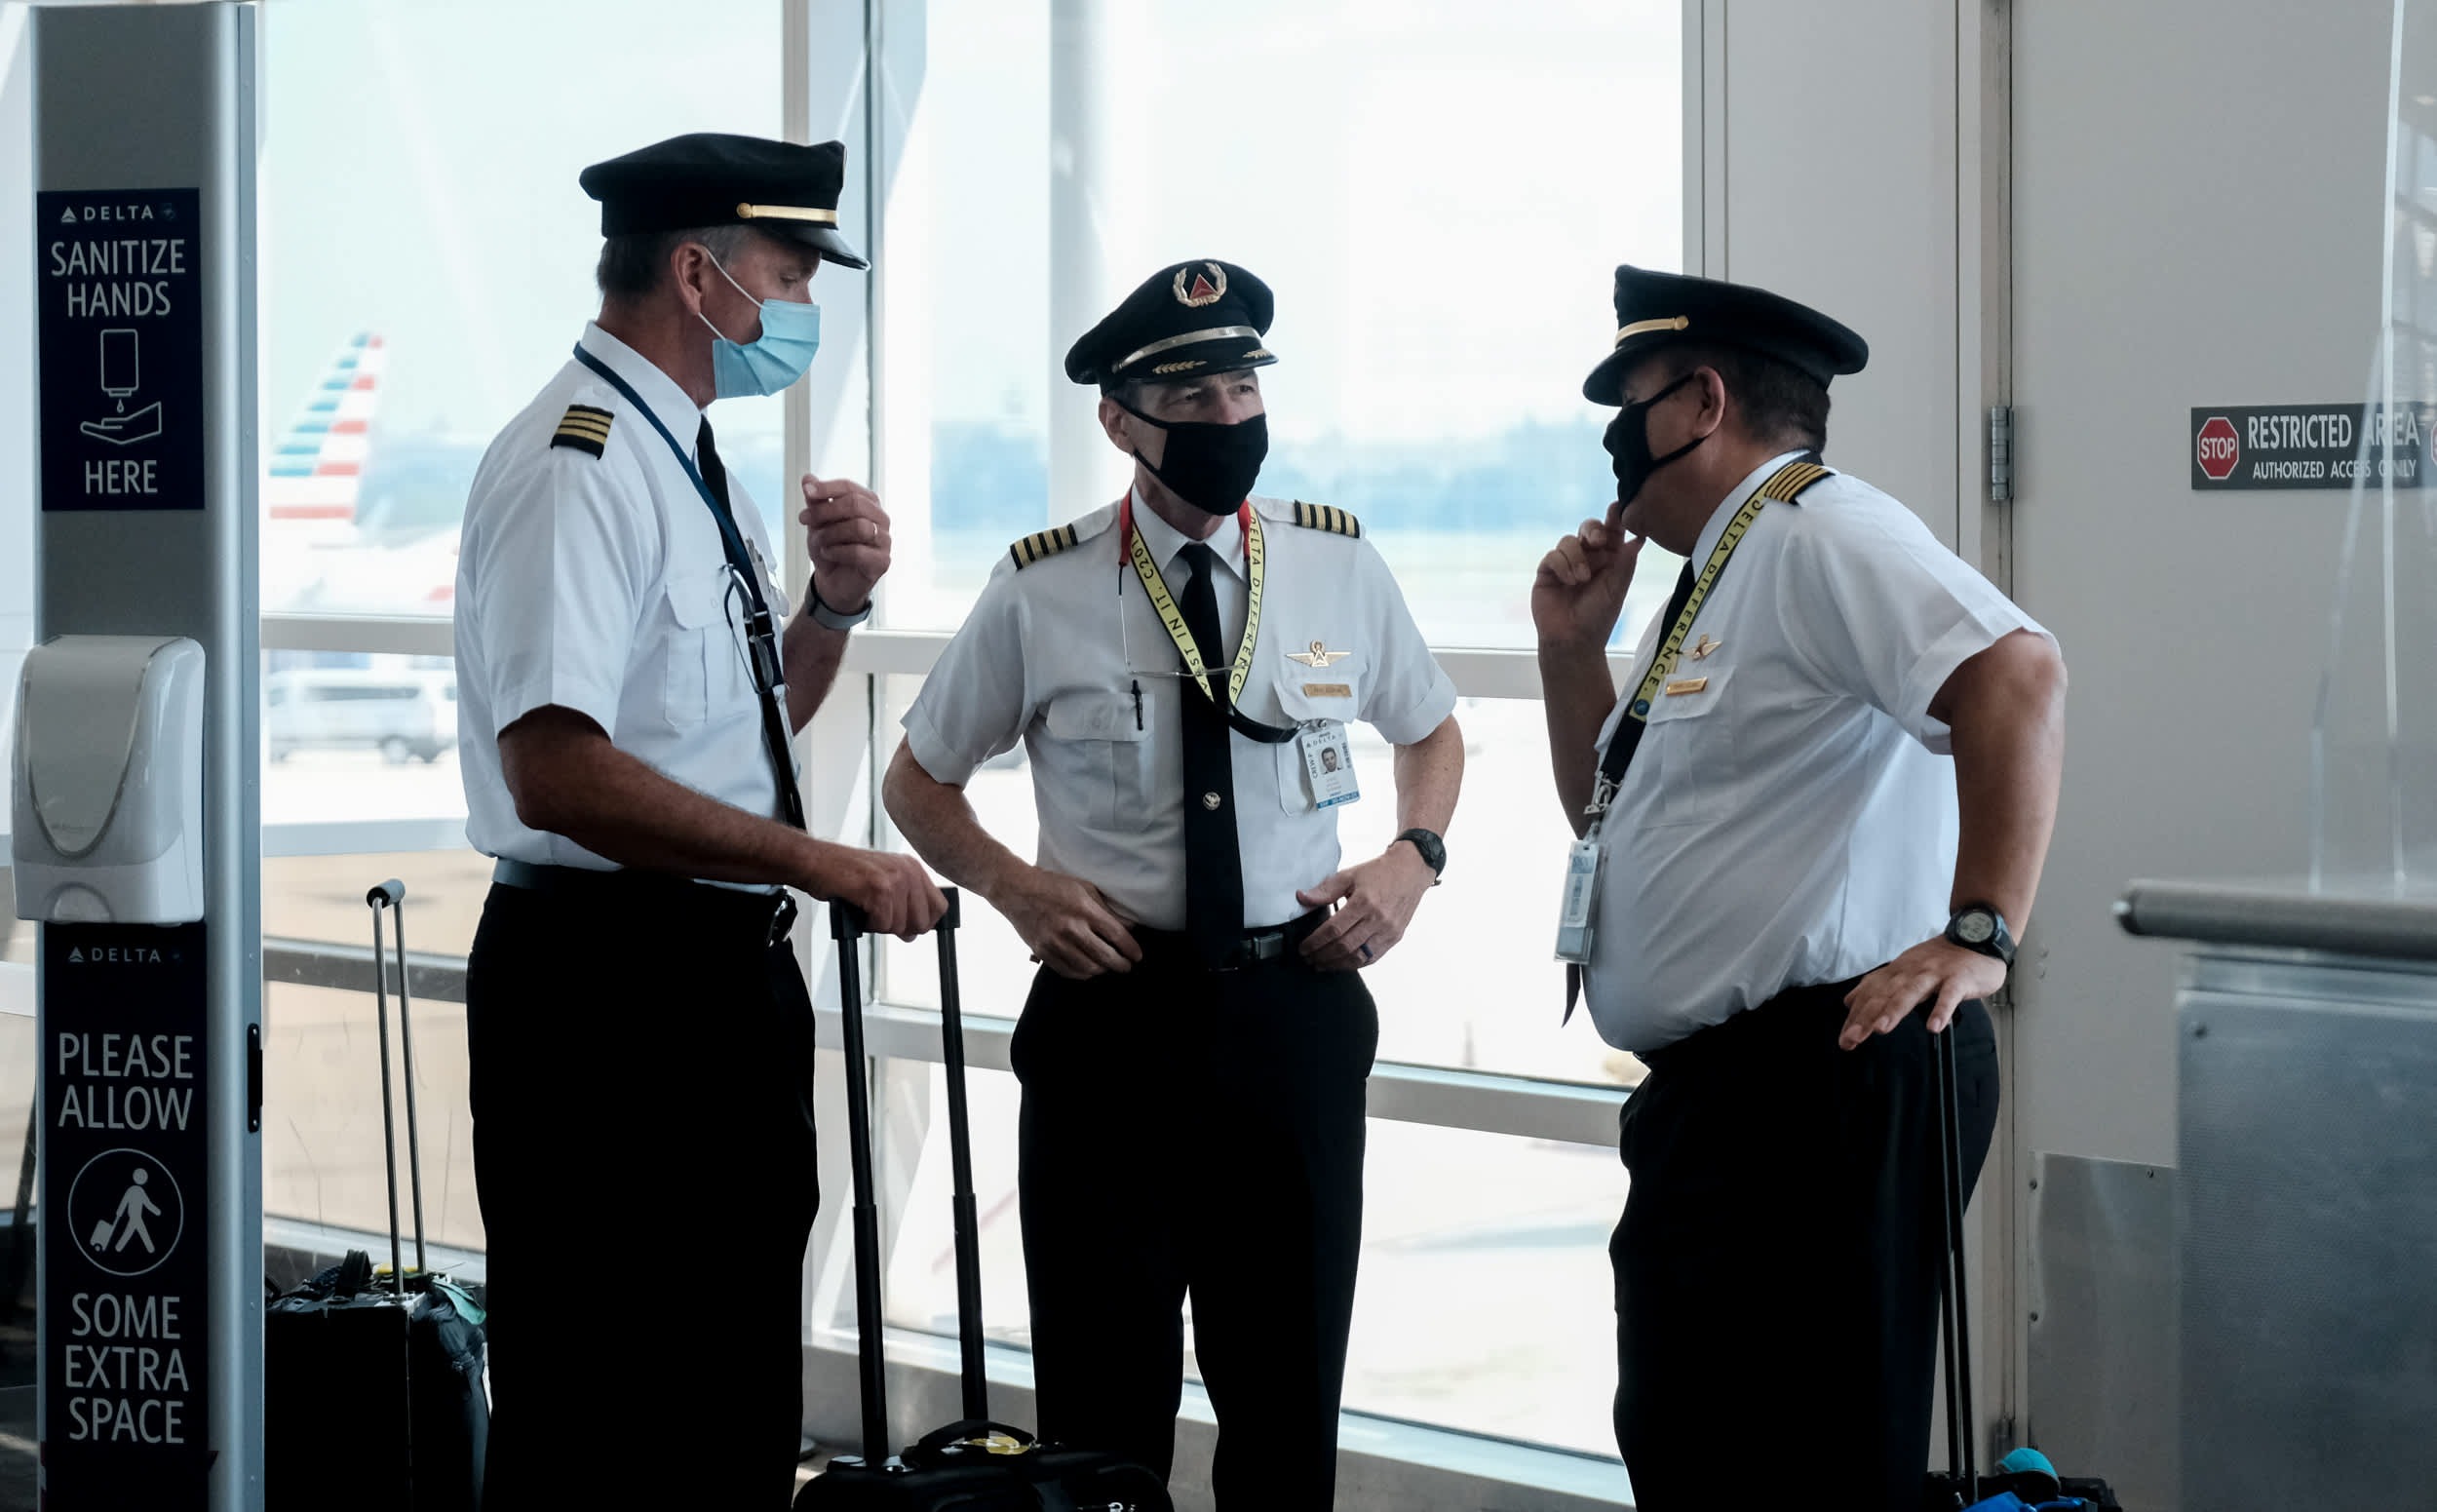 Delta plans to bring back 400 pilots, signaling optimism about future air travel